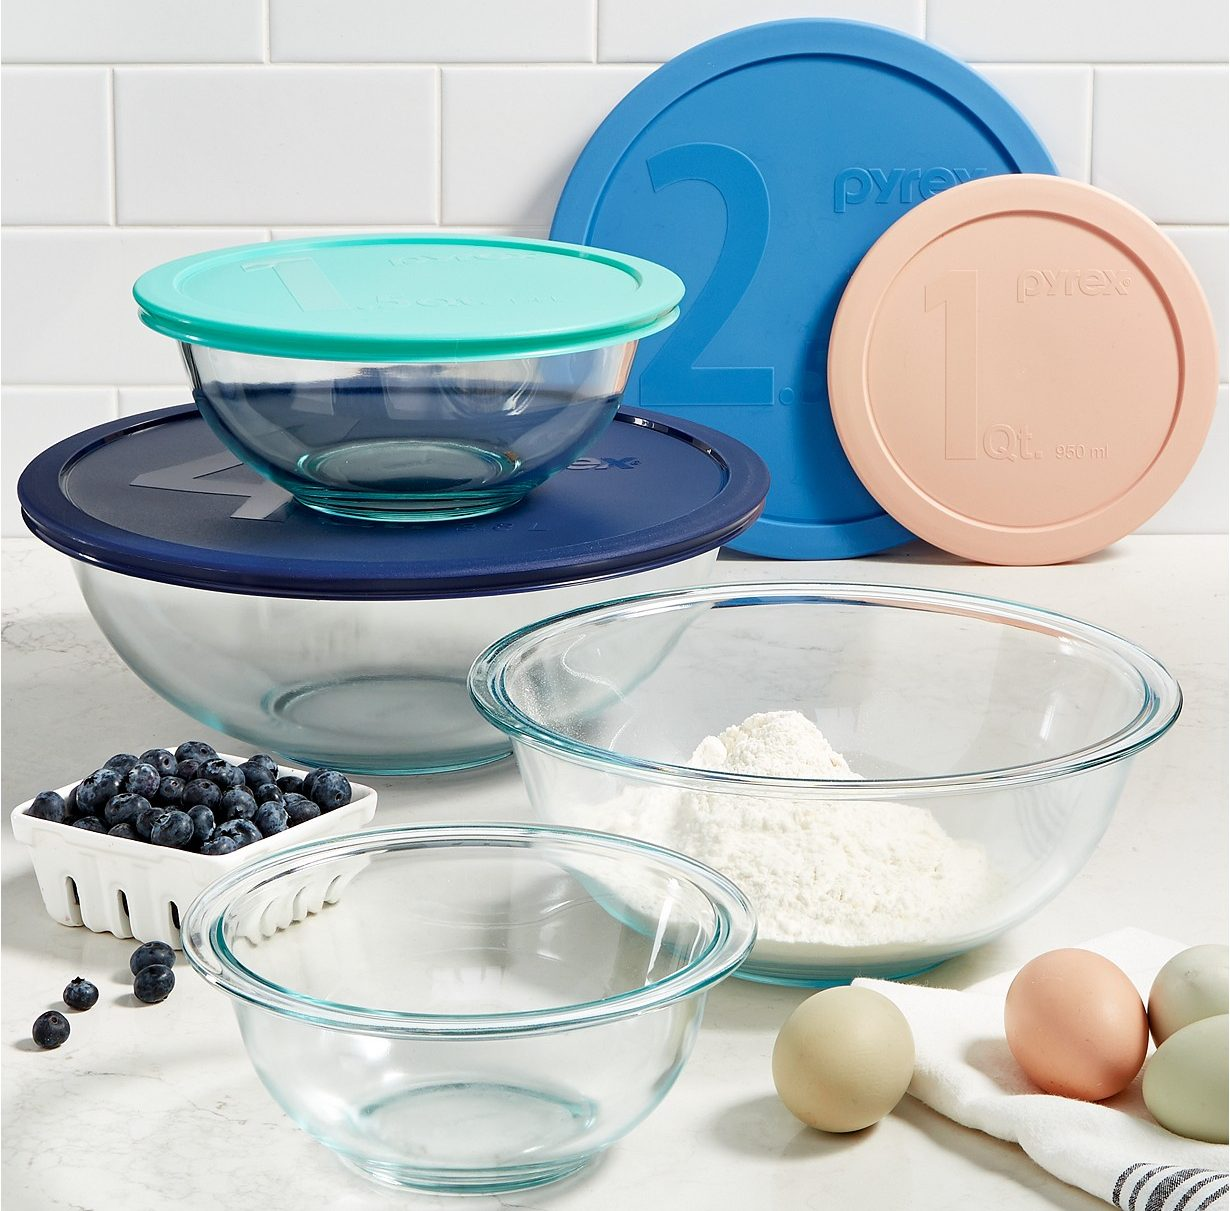 Pyrex Mixing Bowls in Kitchen